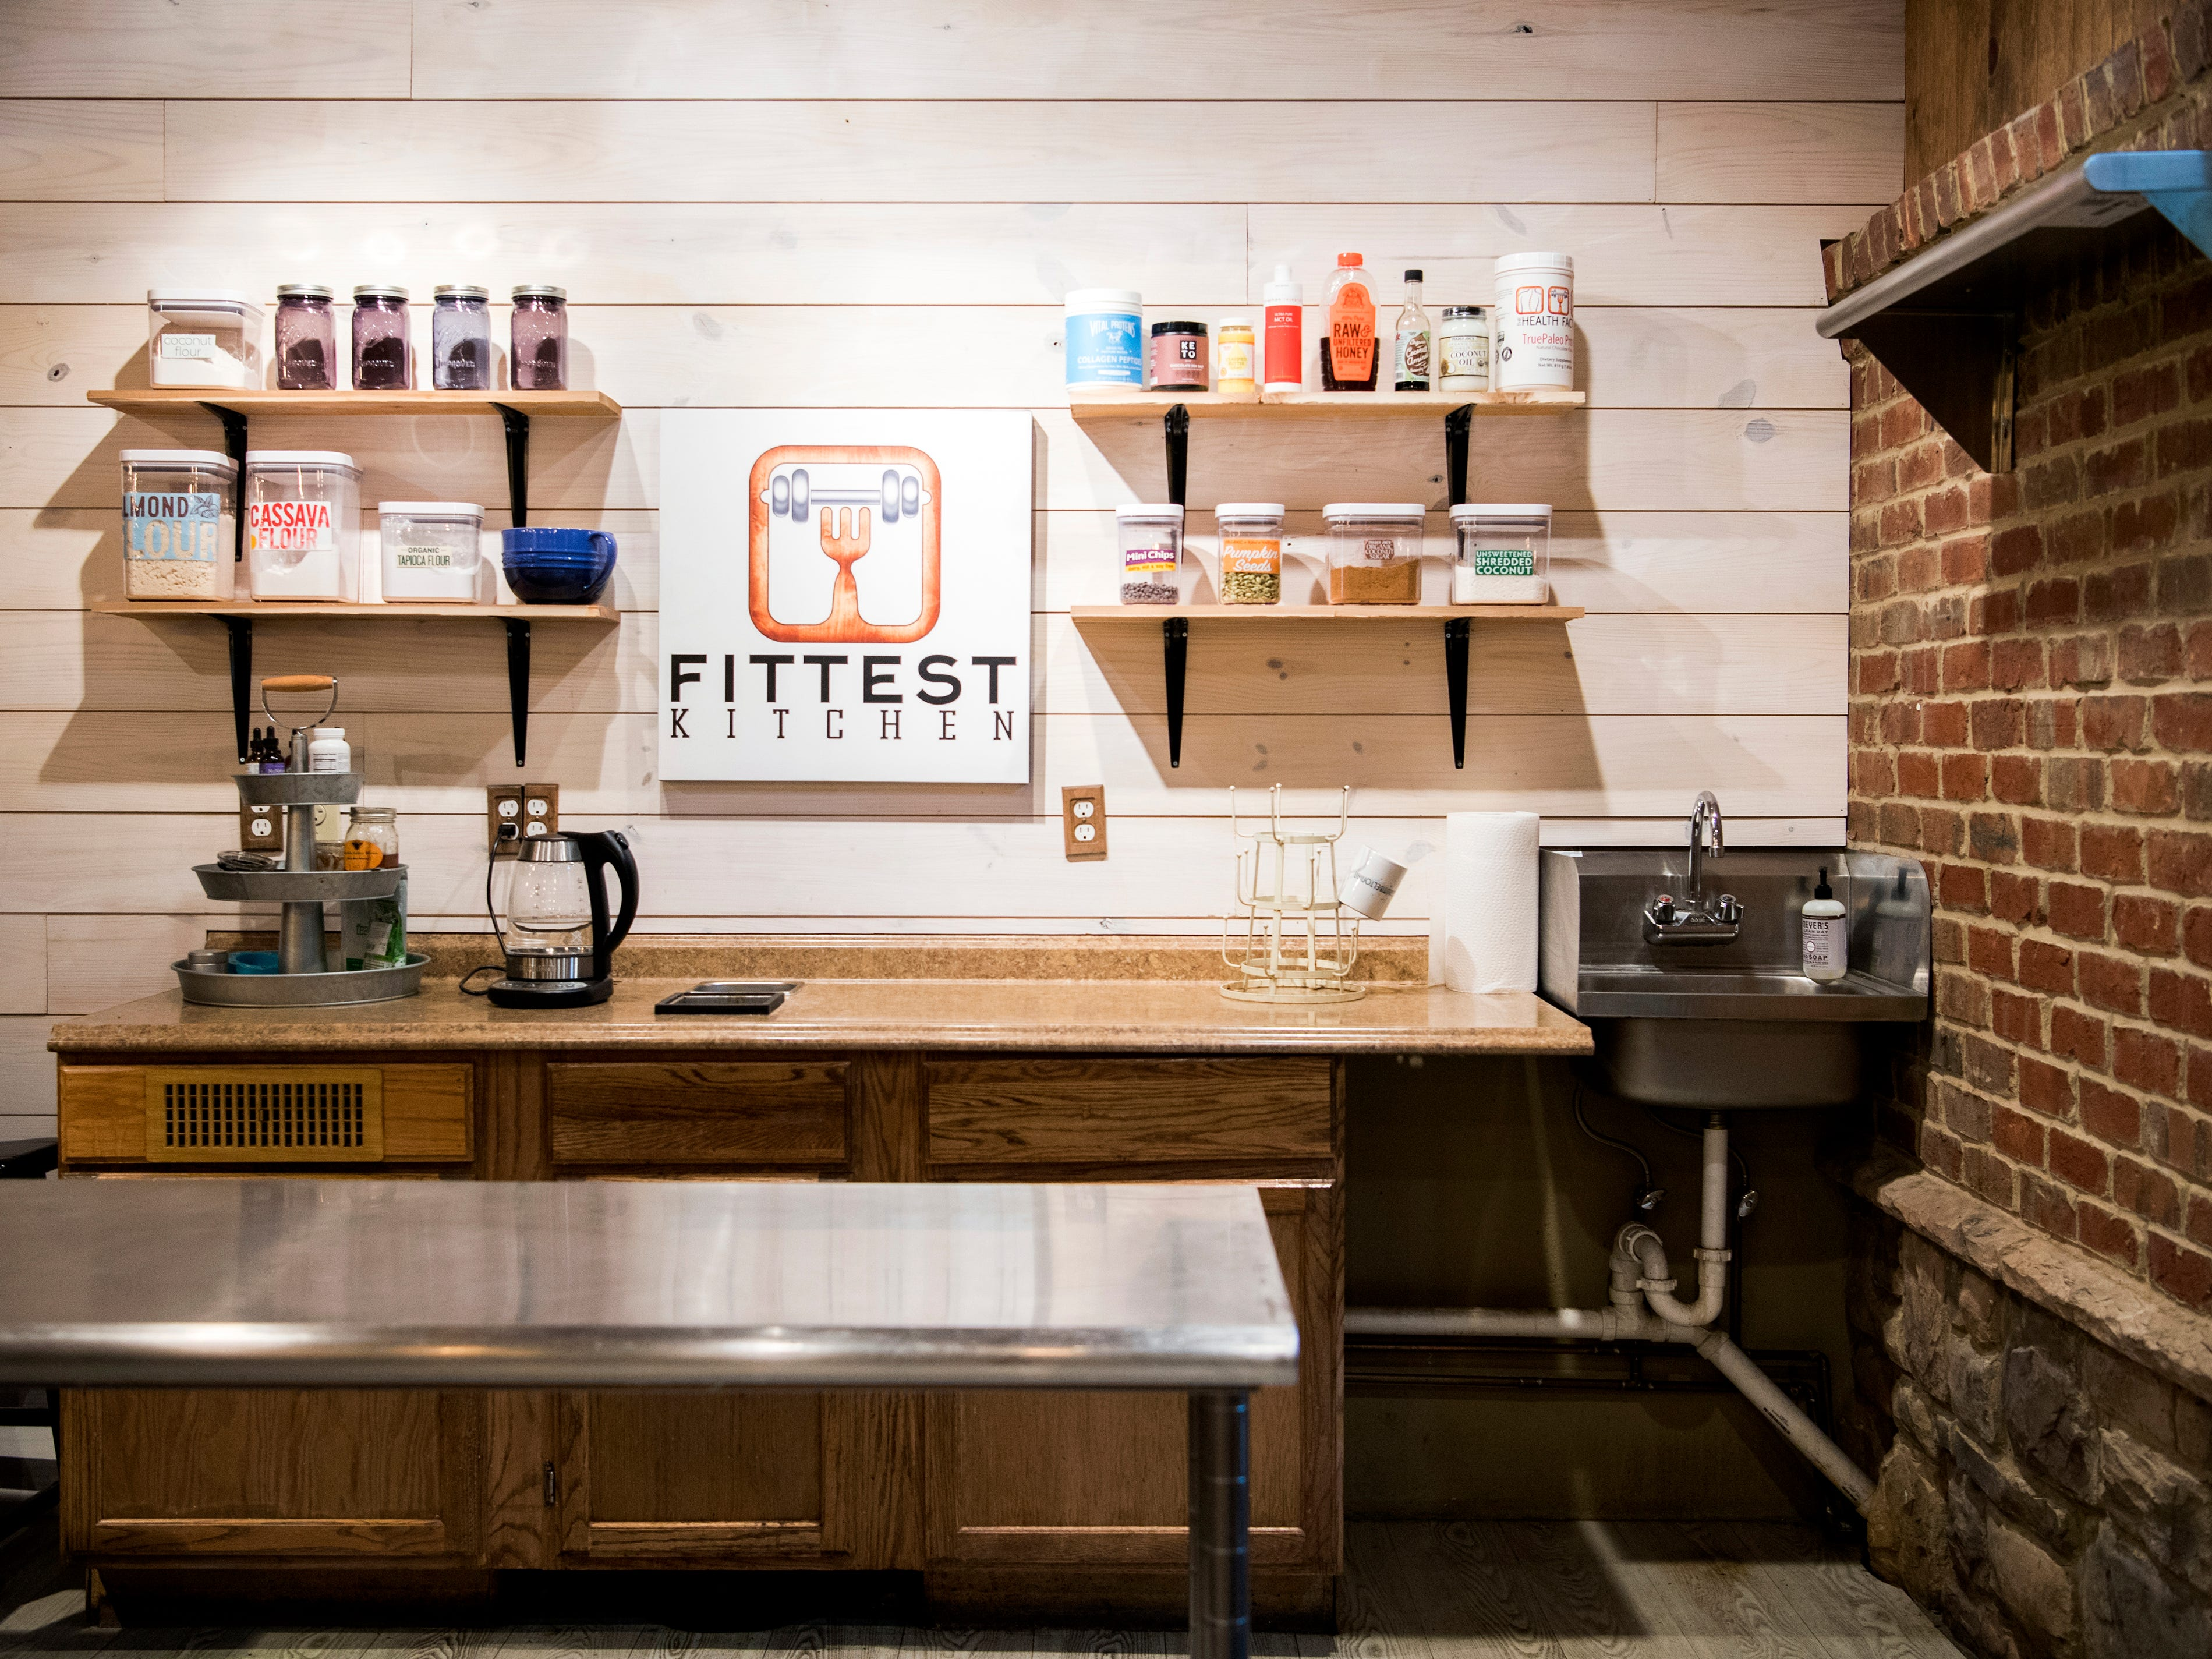 The kitchen area for Fittest Kitchen, a meal prepping service housed at The Health Factory located on Alcoa Highway in Knoxville.